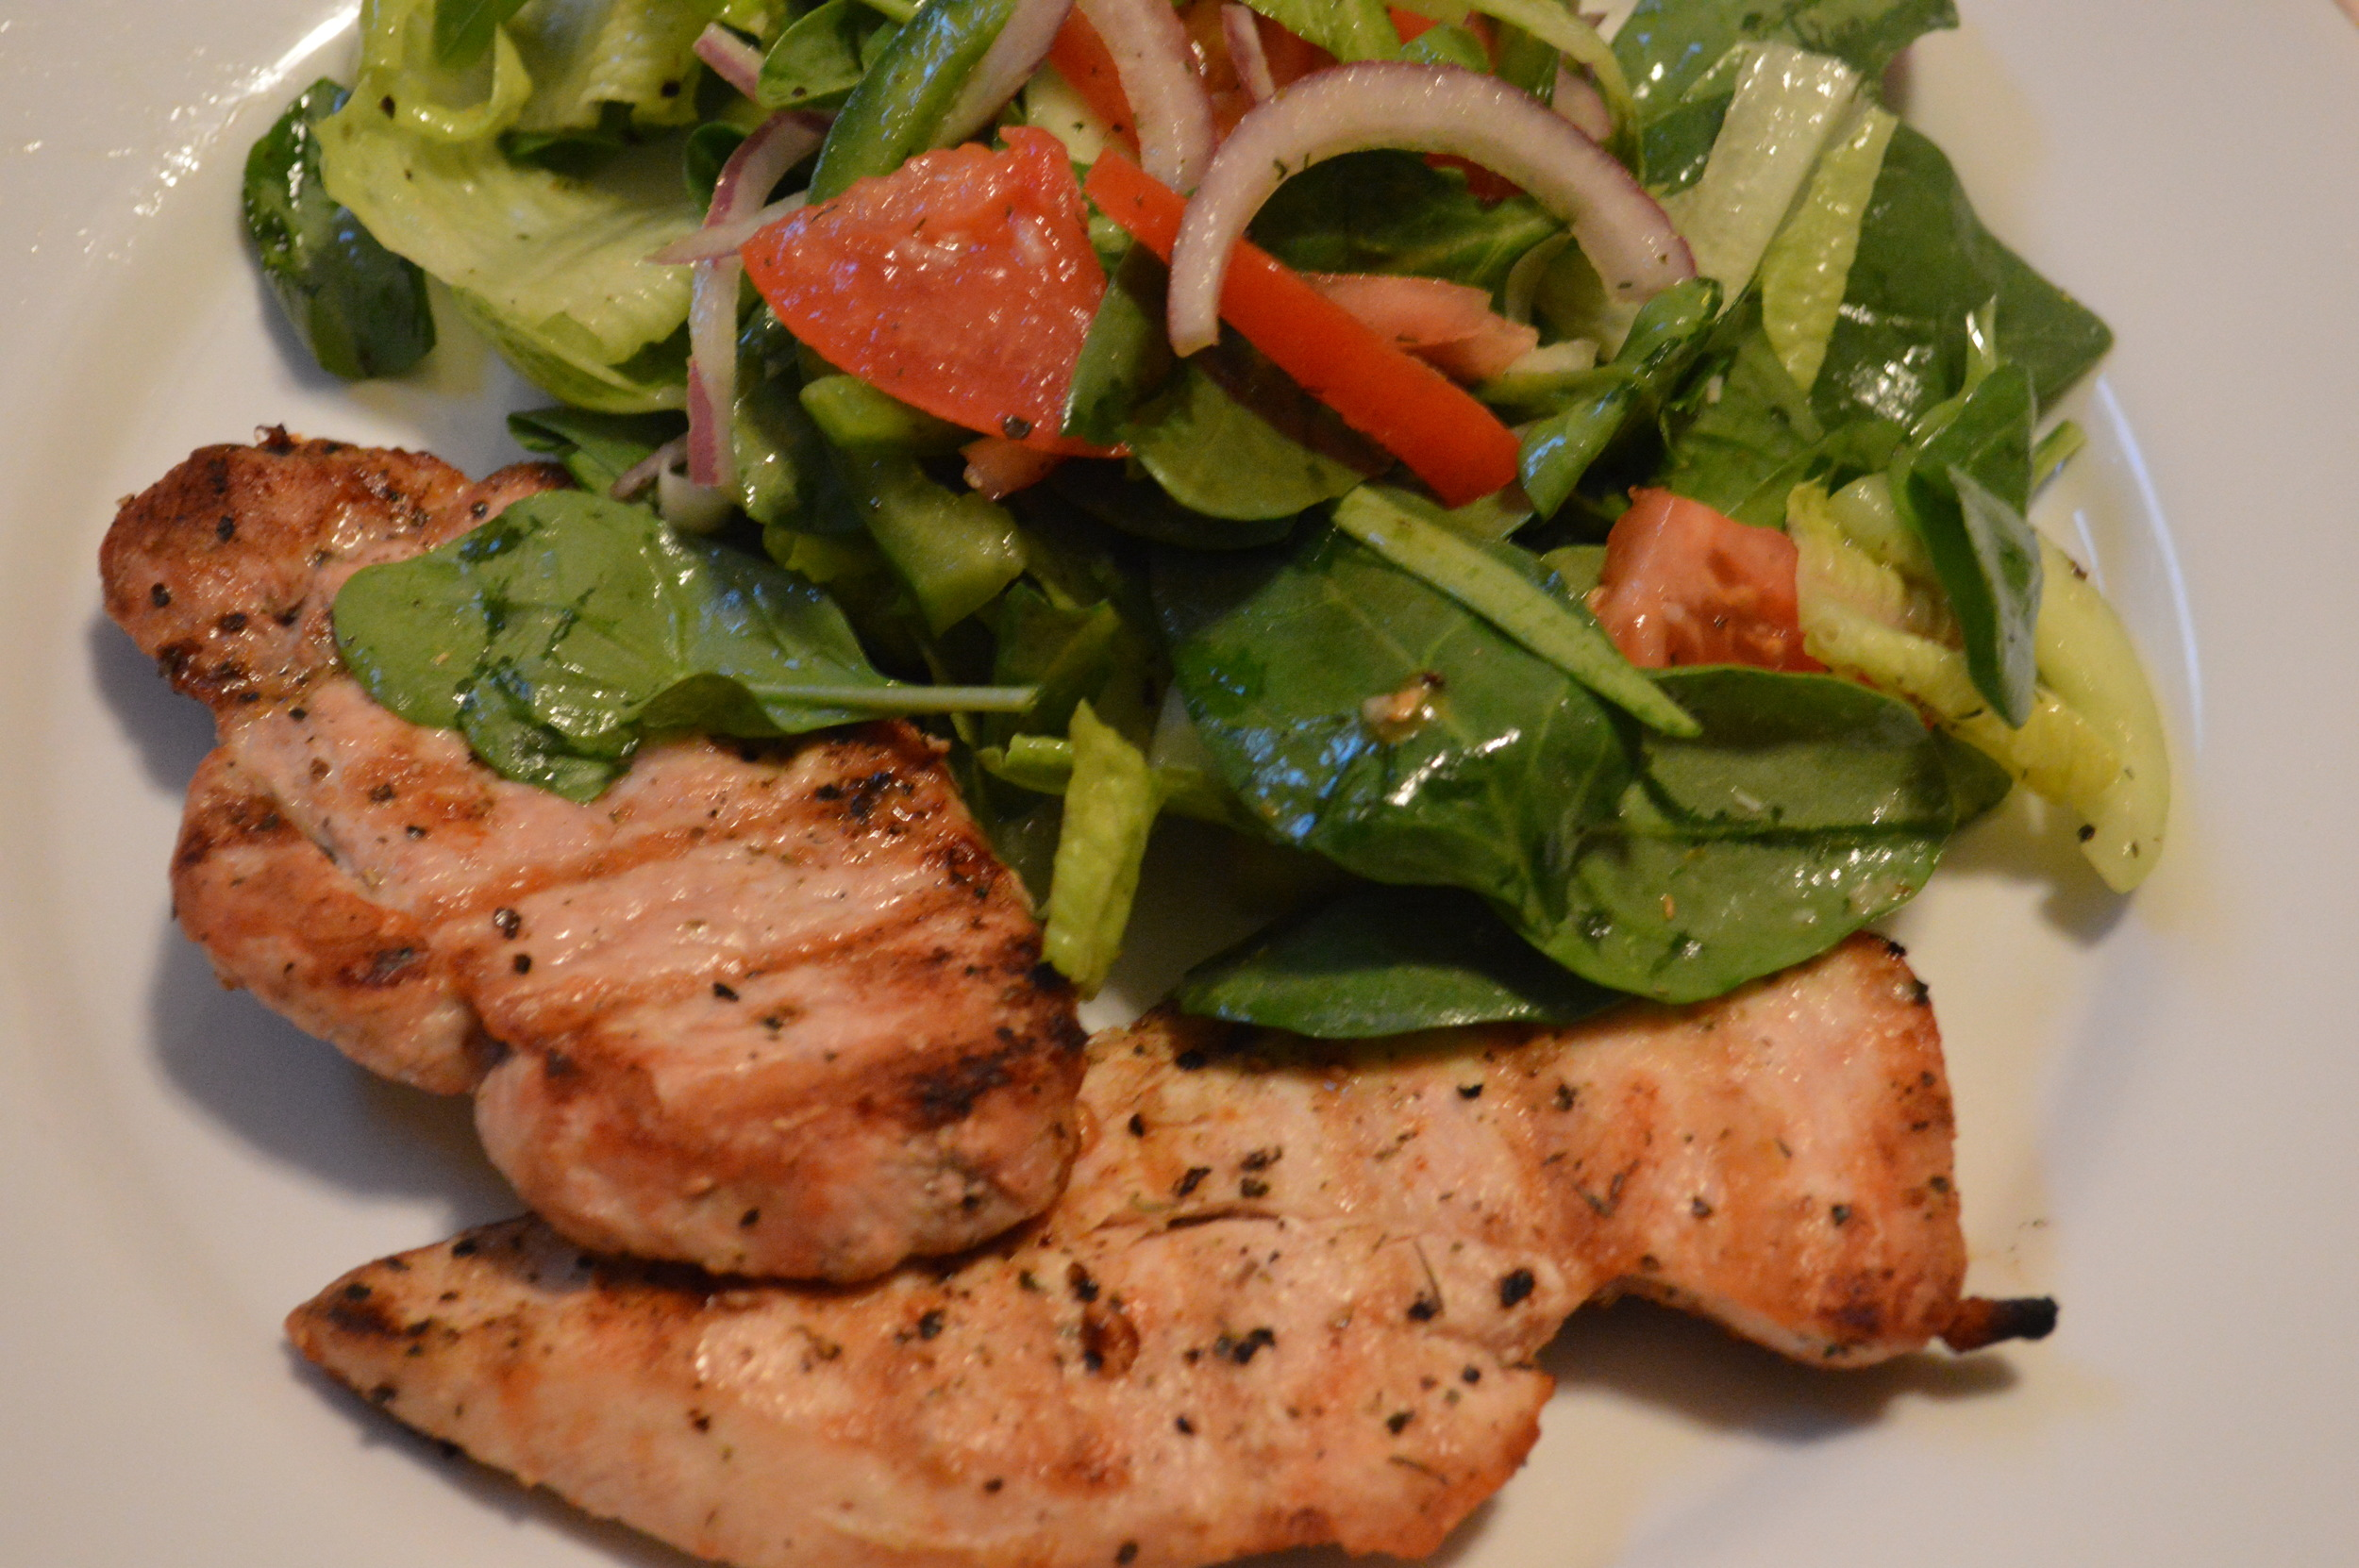 Grilled Chicken & Salad